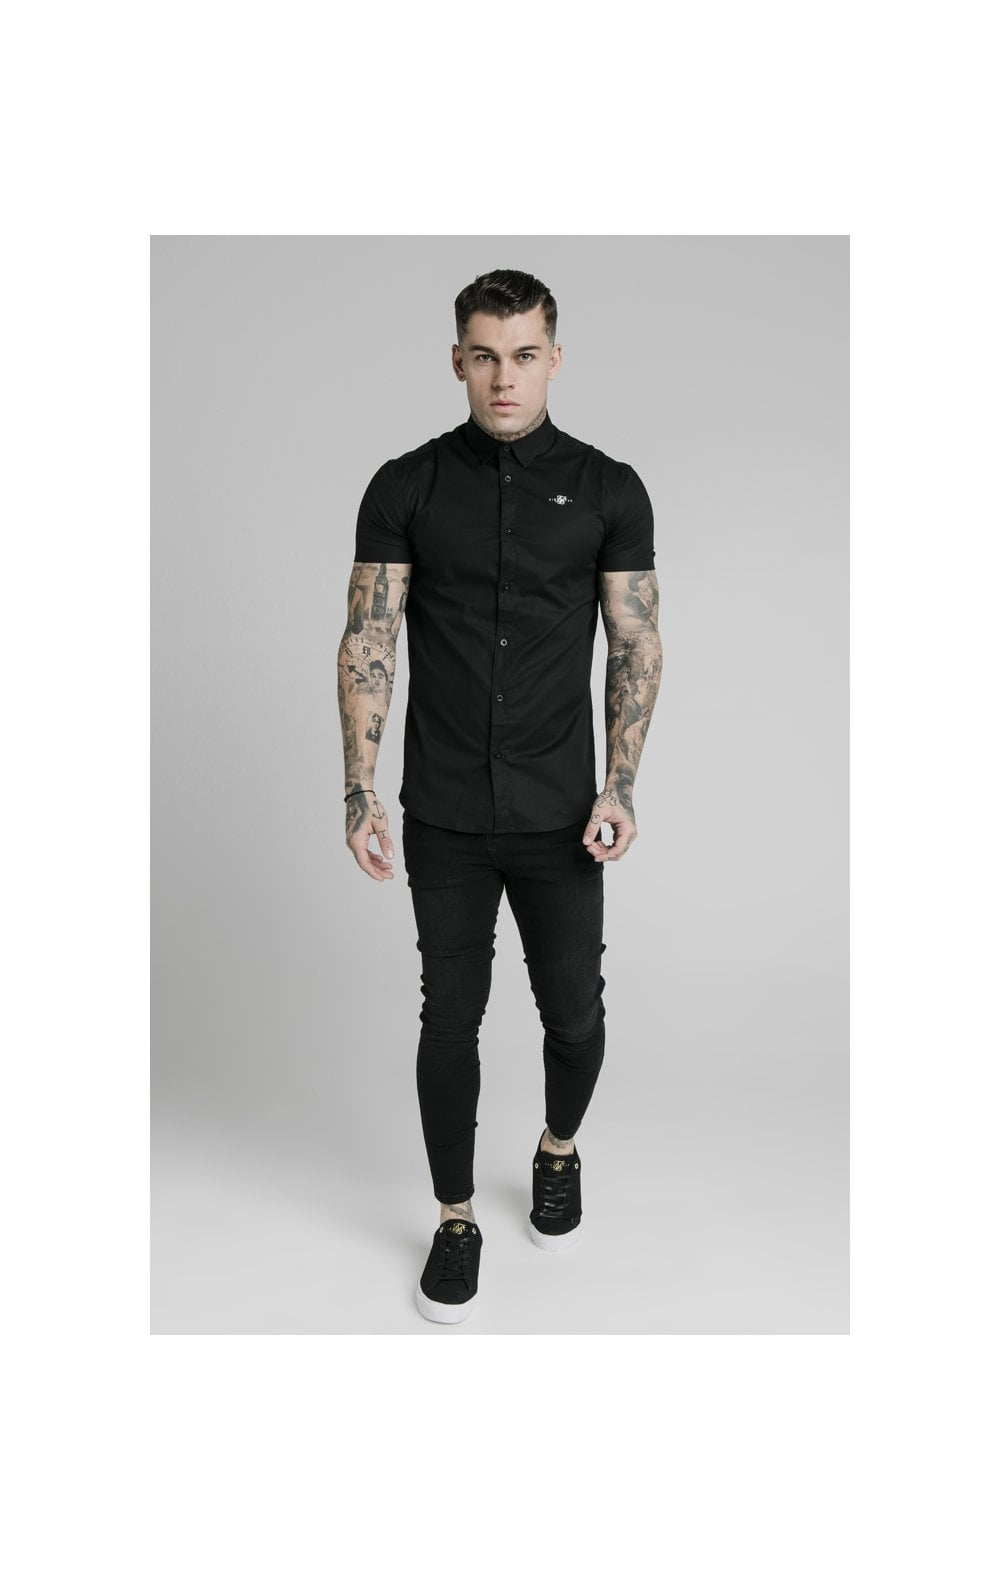 SikSilk S/S Standard Collar Shirt - Black (2)